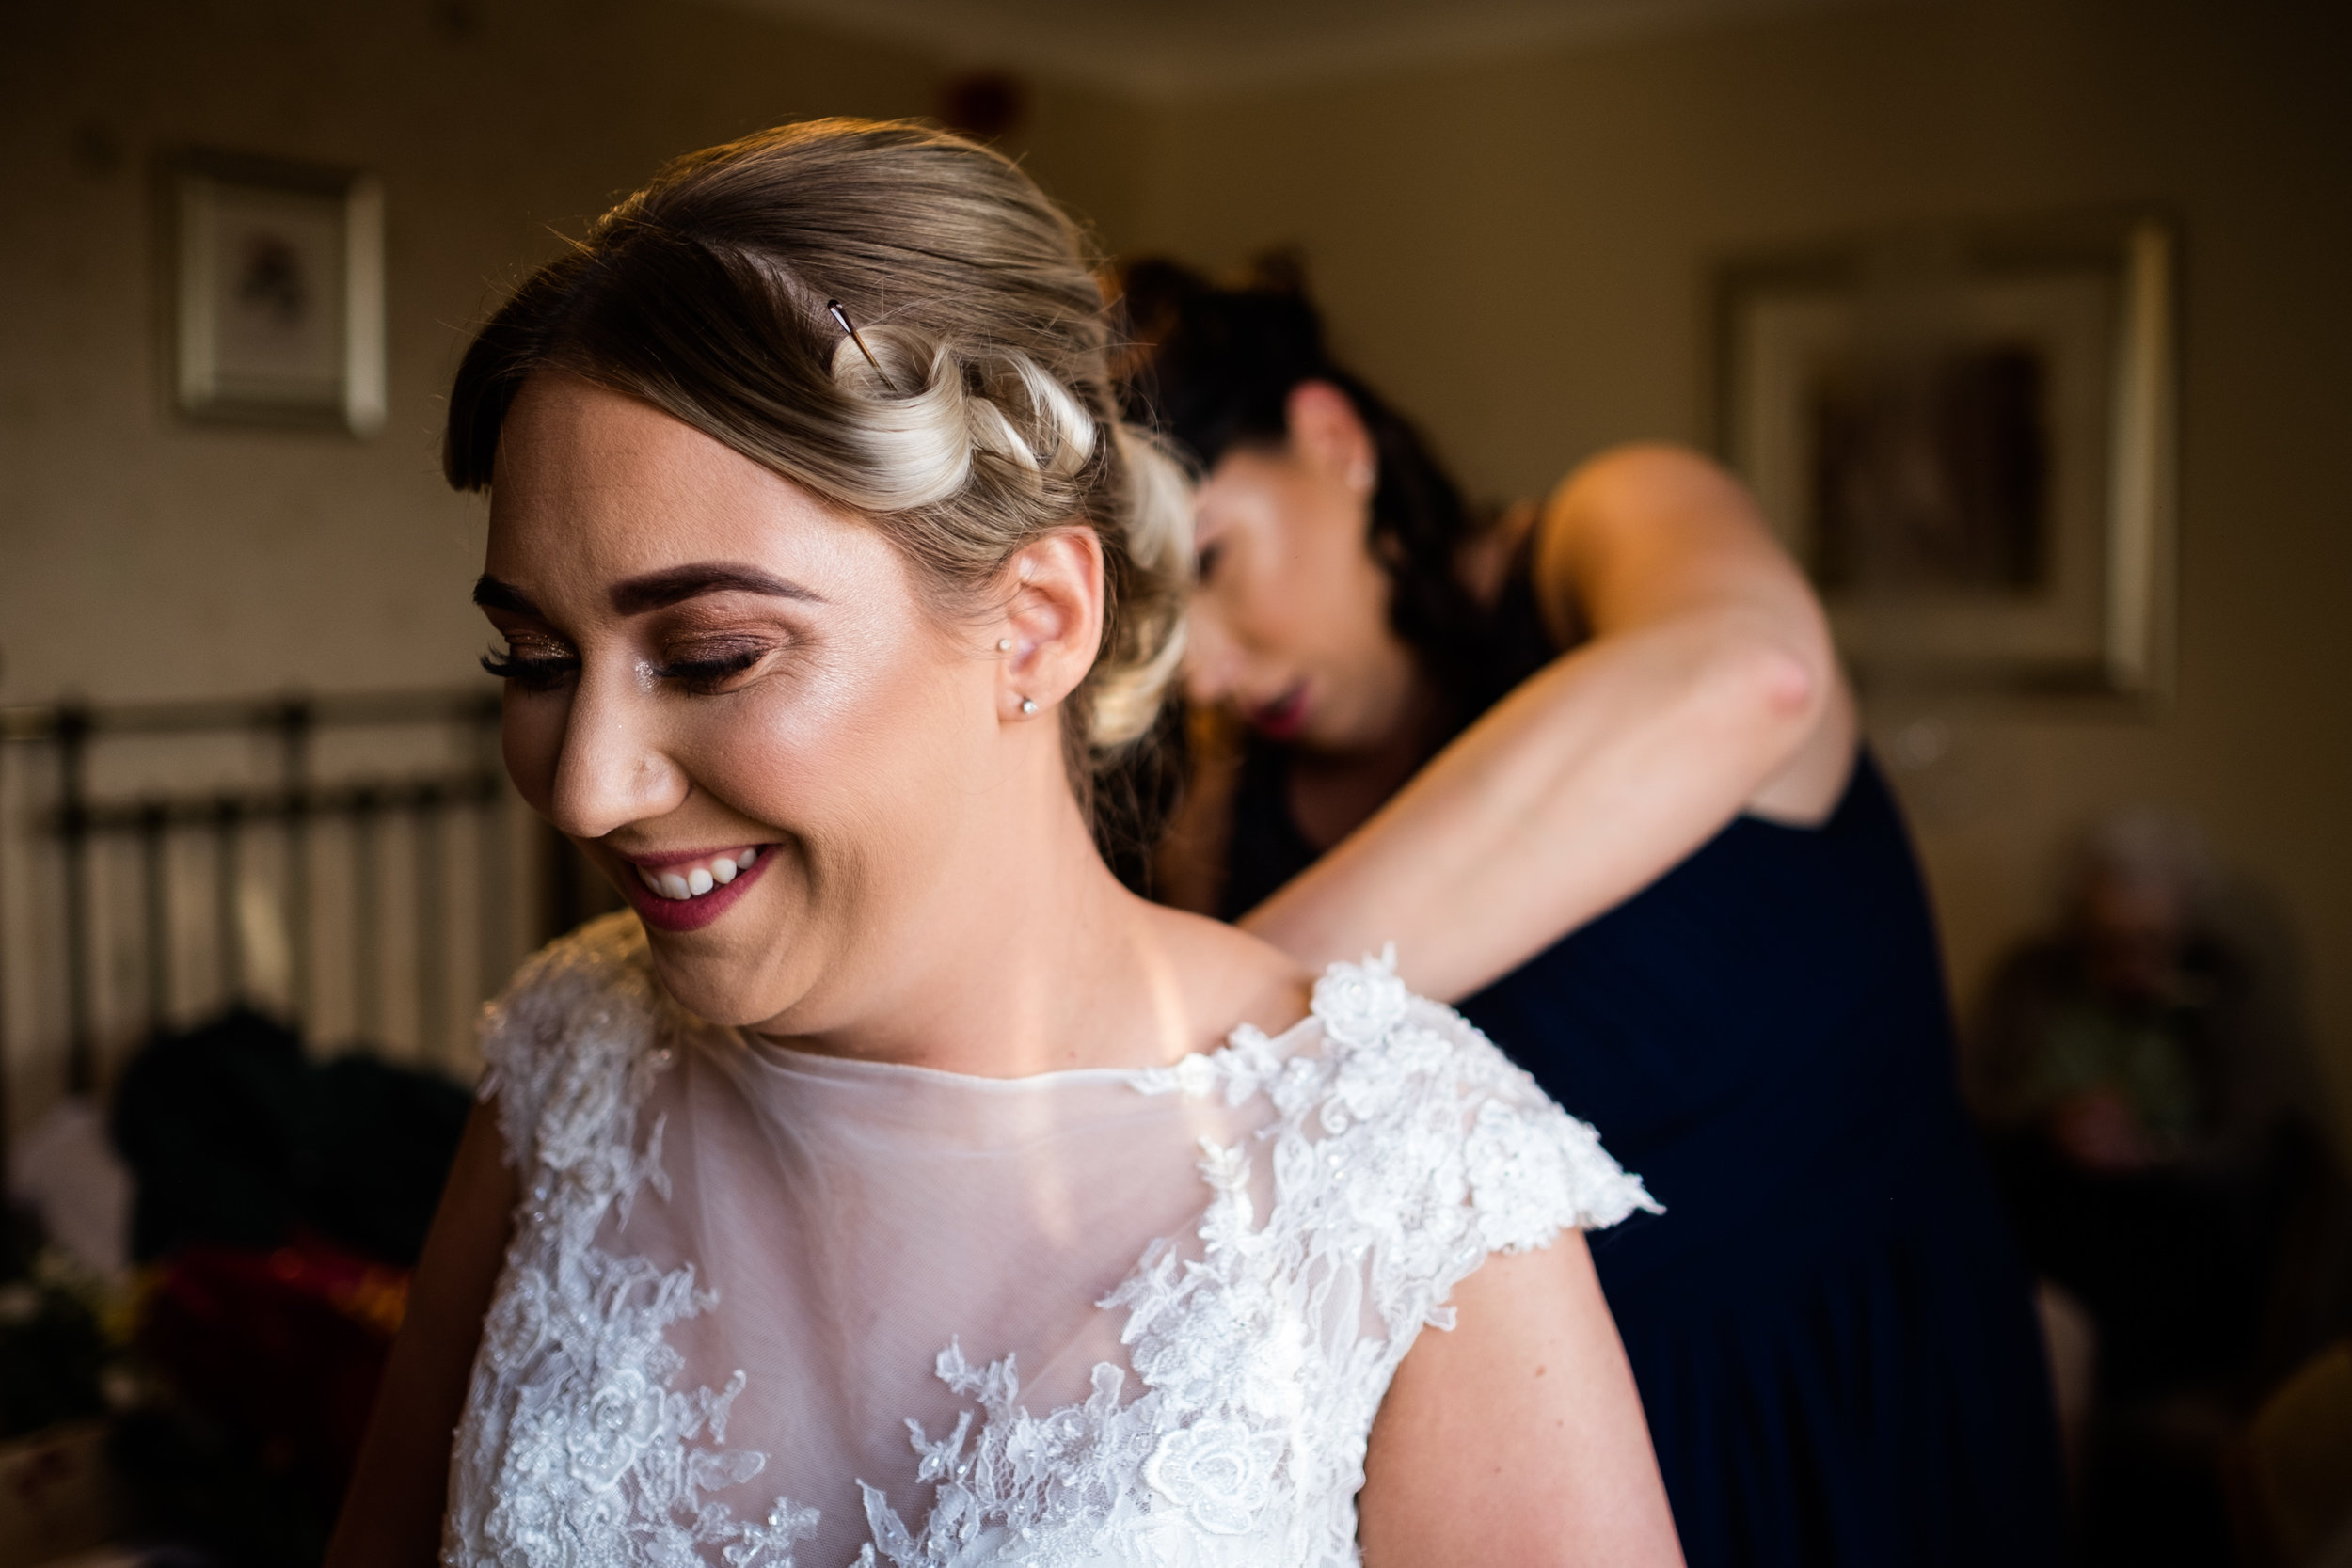 Autumn Wedding Photography at The Three Horseshoes, Blackshaw Moor, Staffordshire Moorlands - Jenny Harper-17.jpg